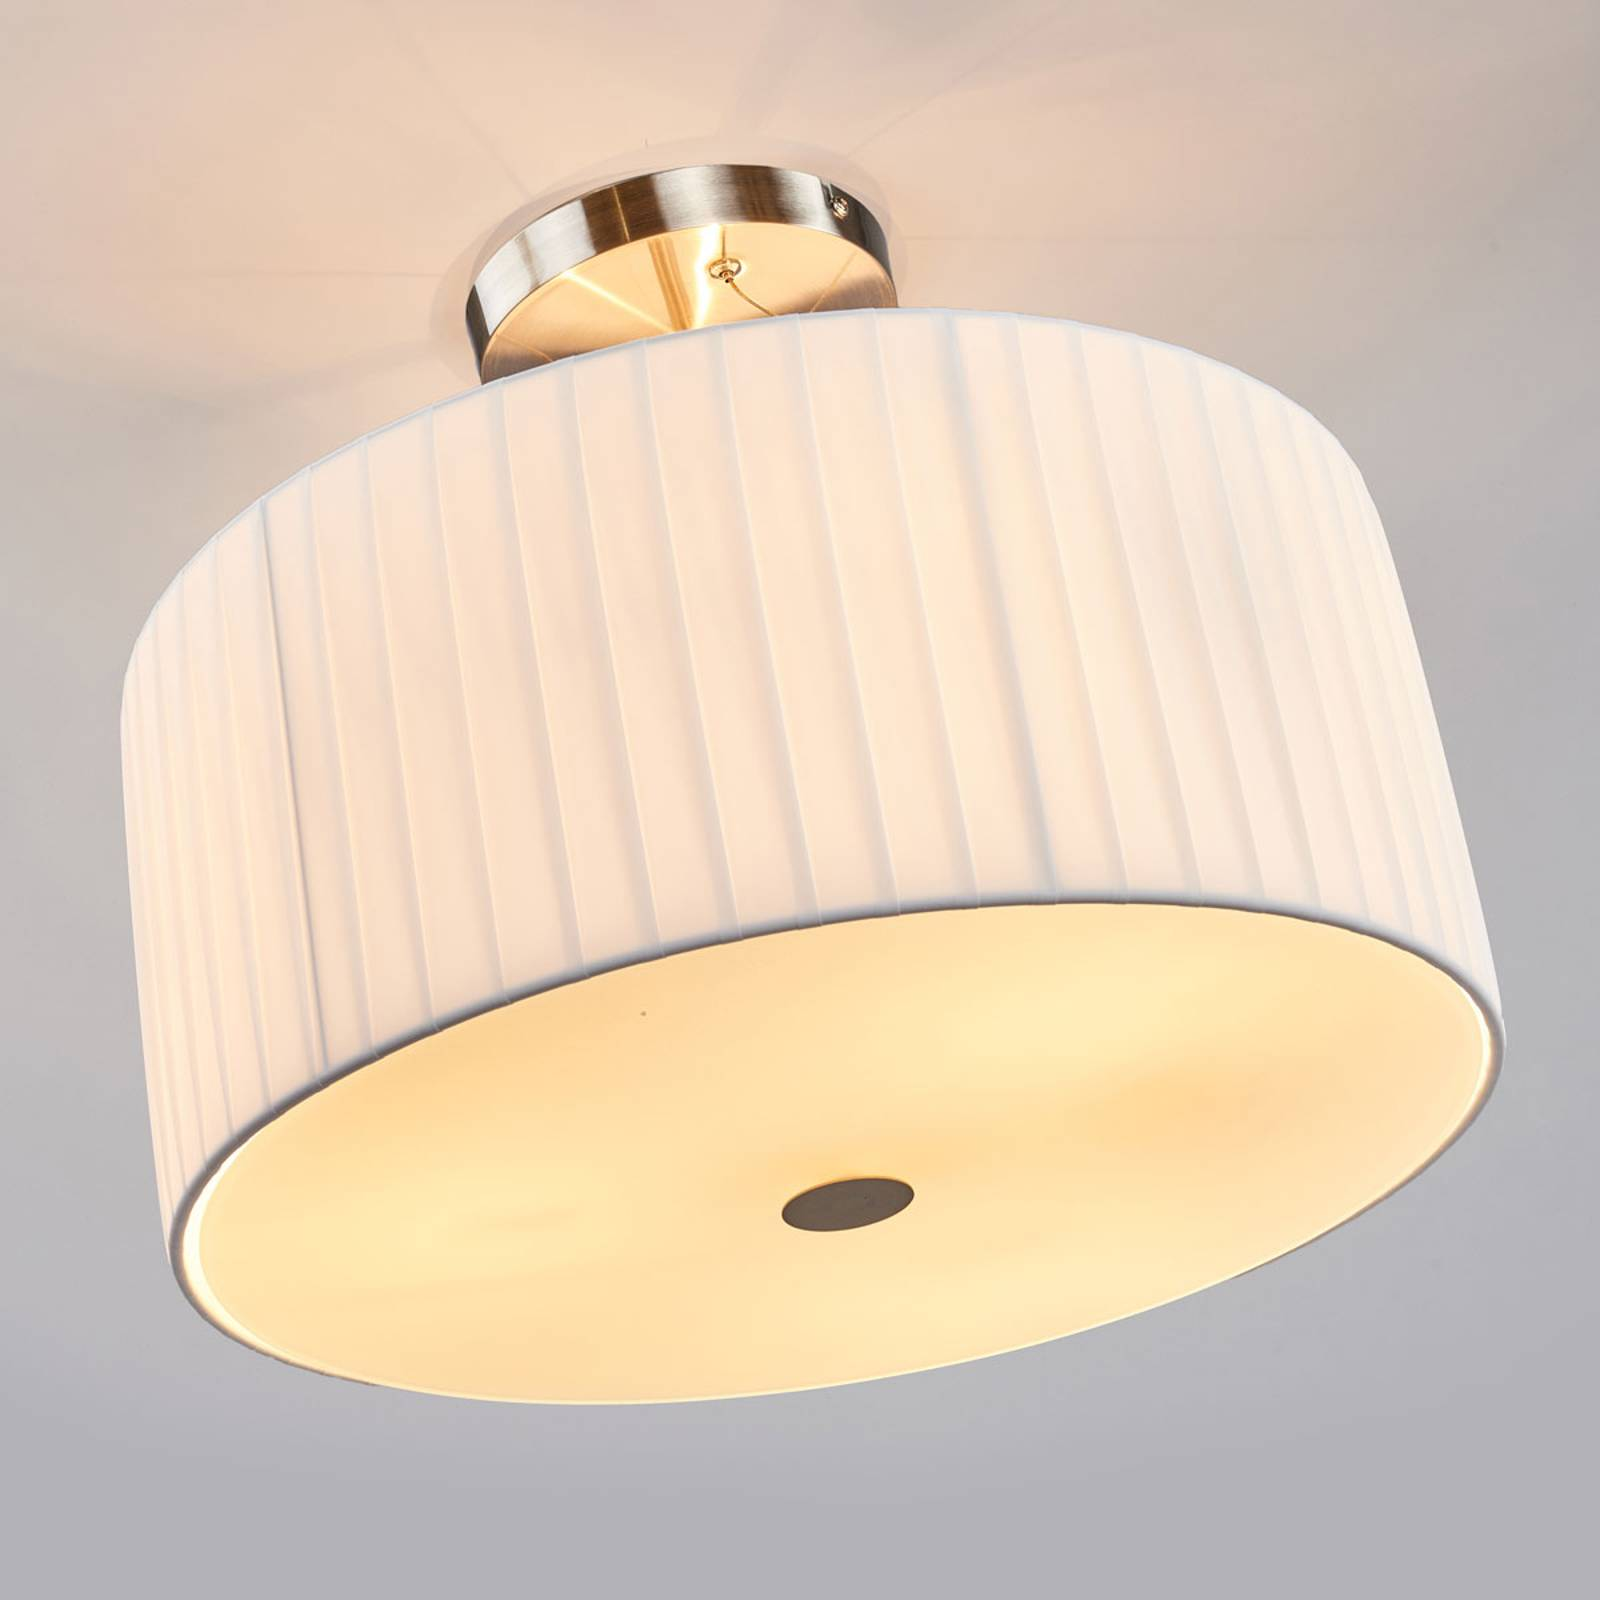 LA NUBE Mellow Ceiling Lamp from Globo